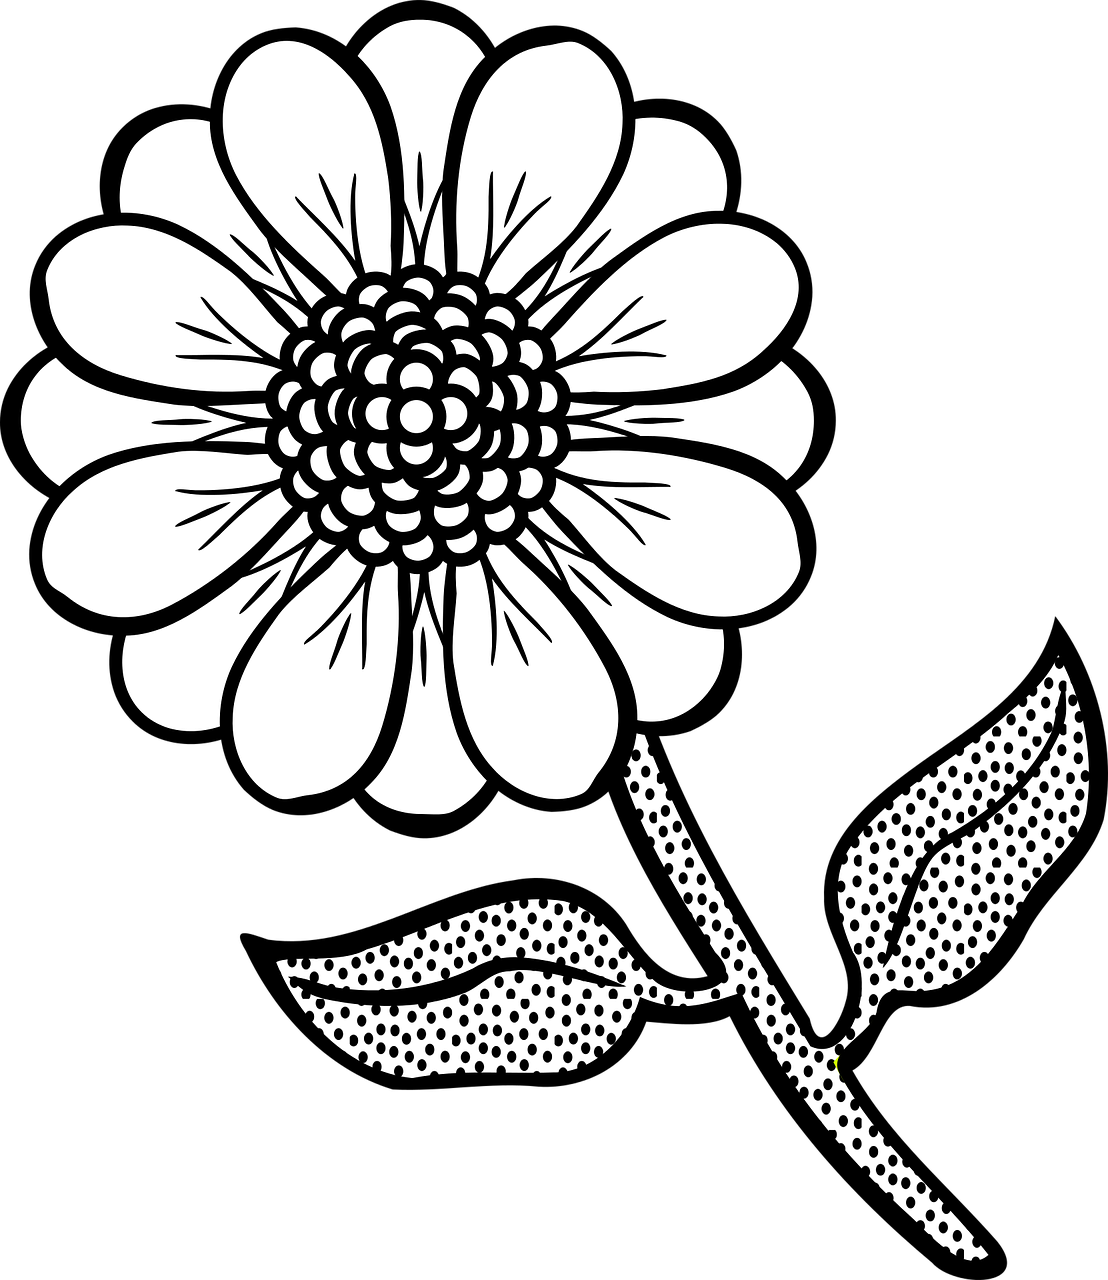 images of flowers to color free printable flower coloring pages 16 pics how to images to of flowers color